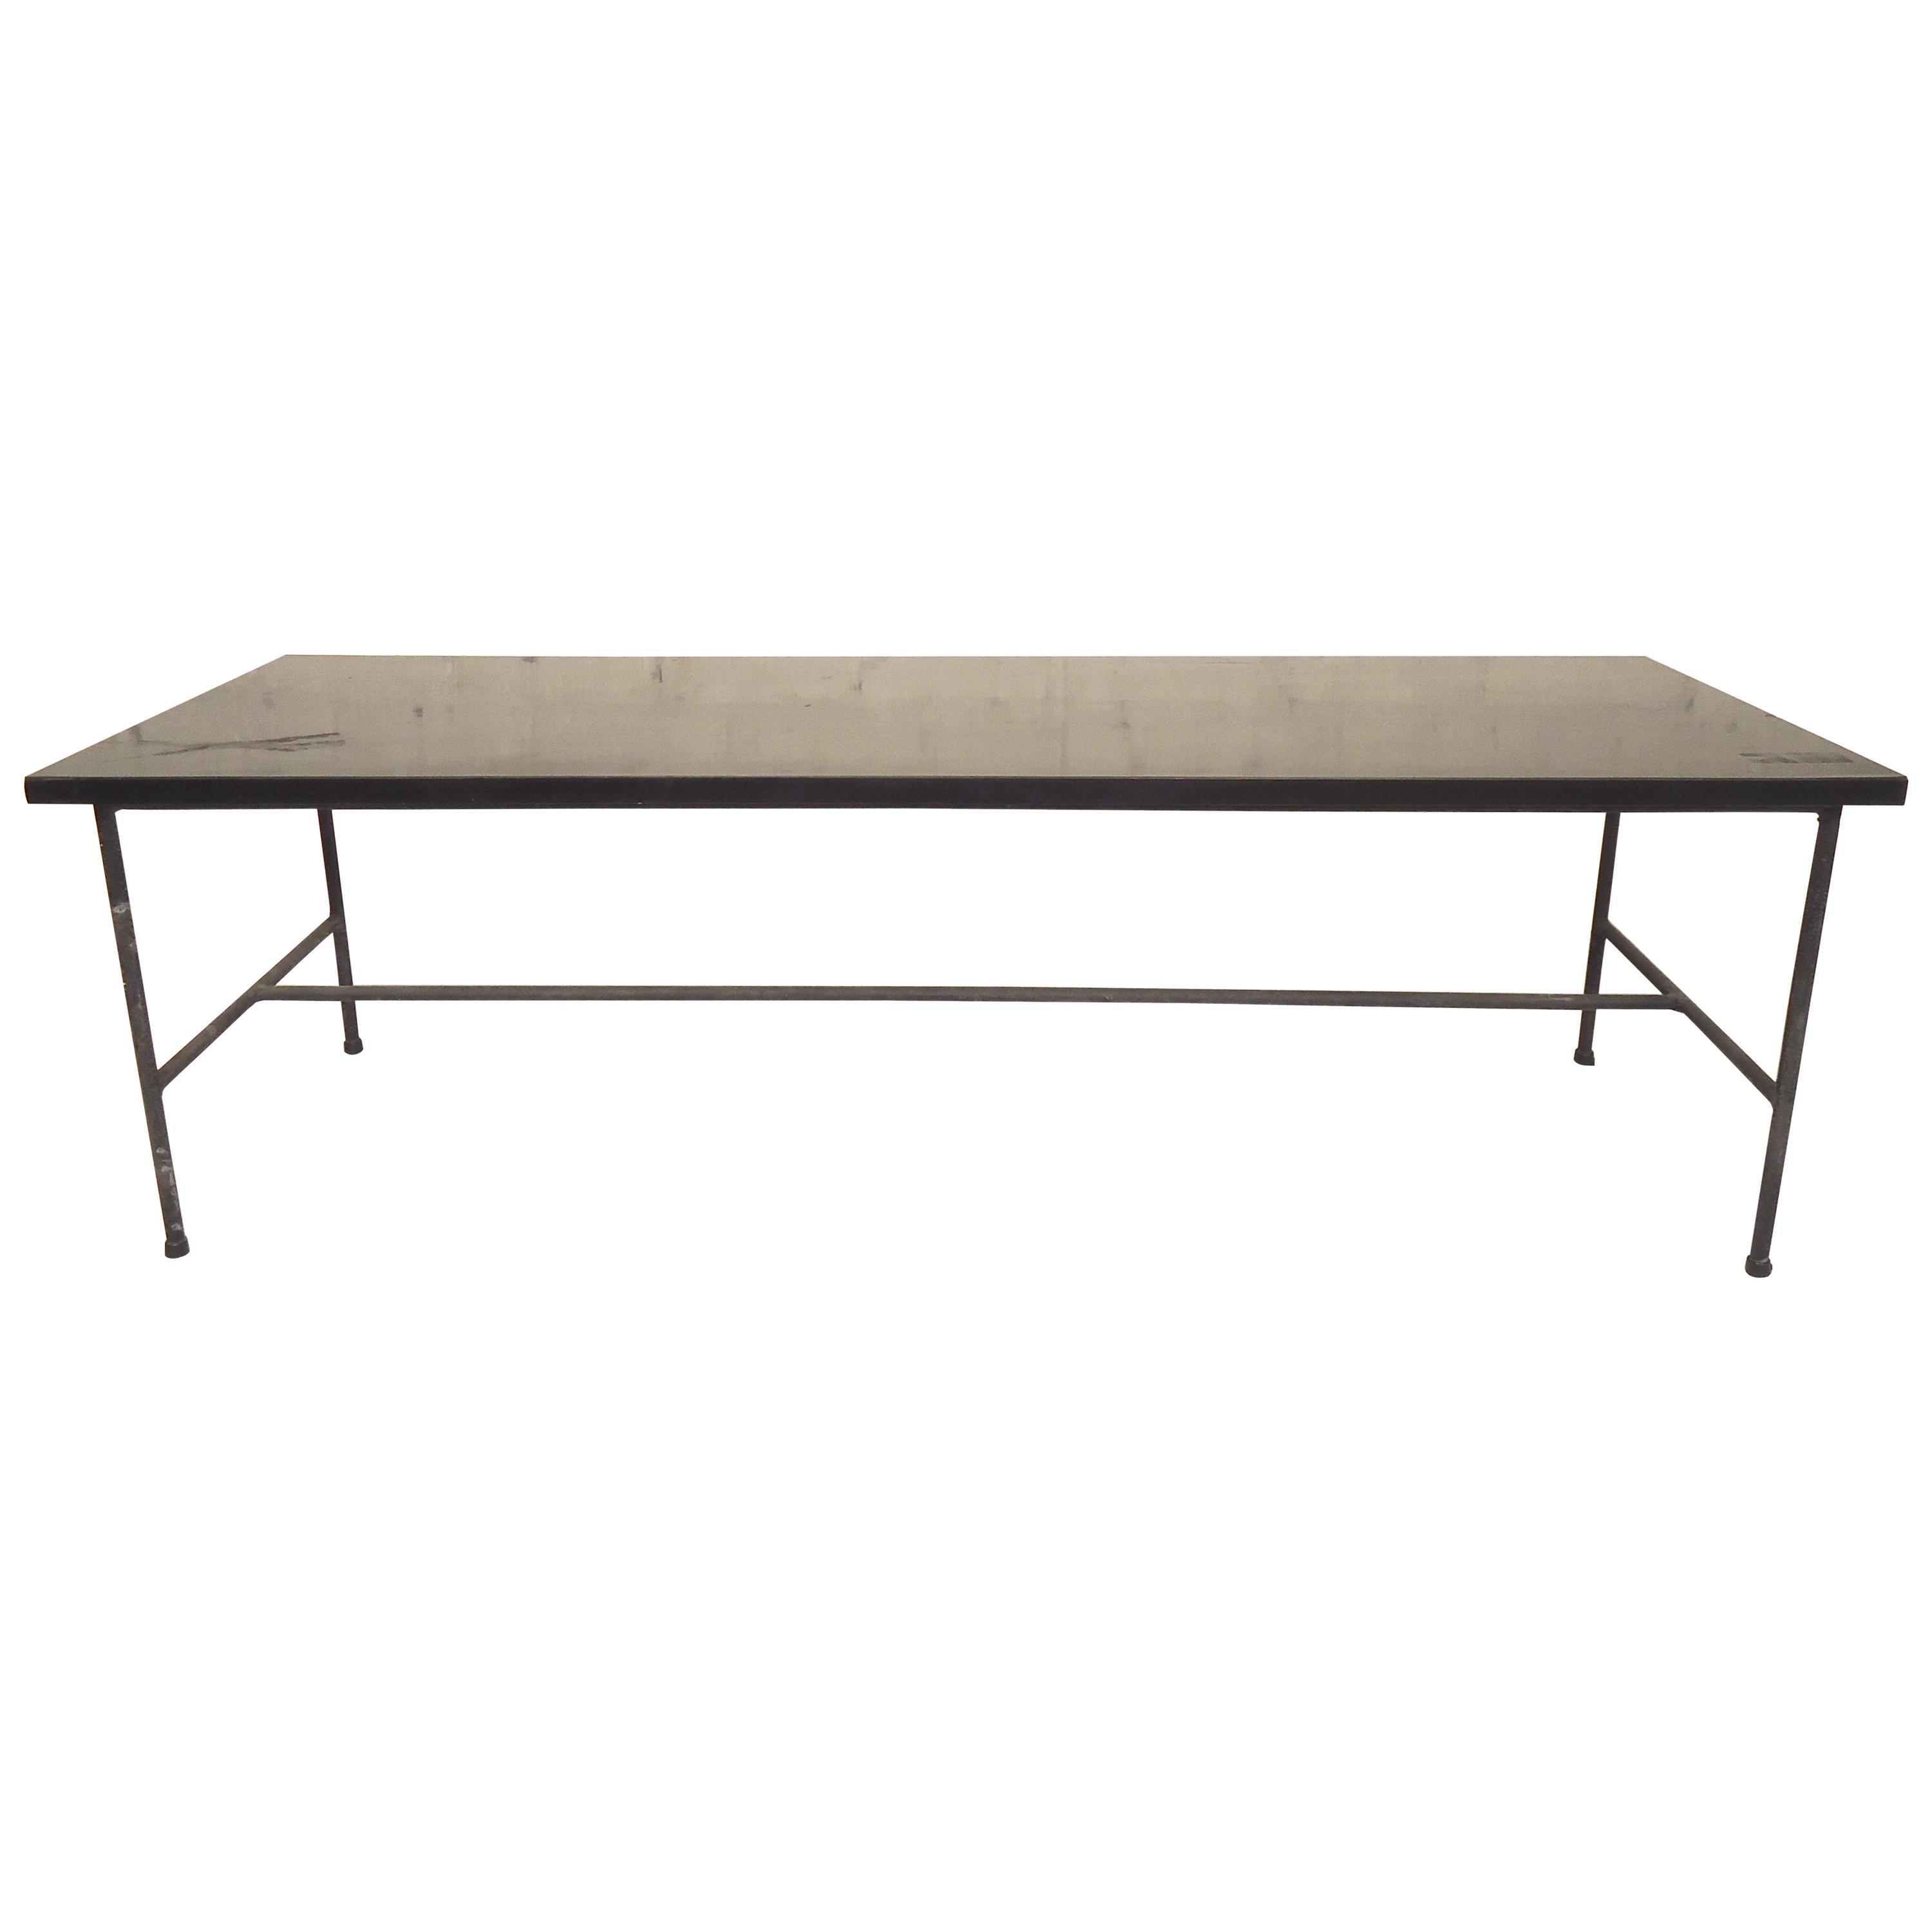 Mid-Century Modern Low Table or Bench